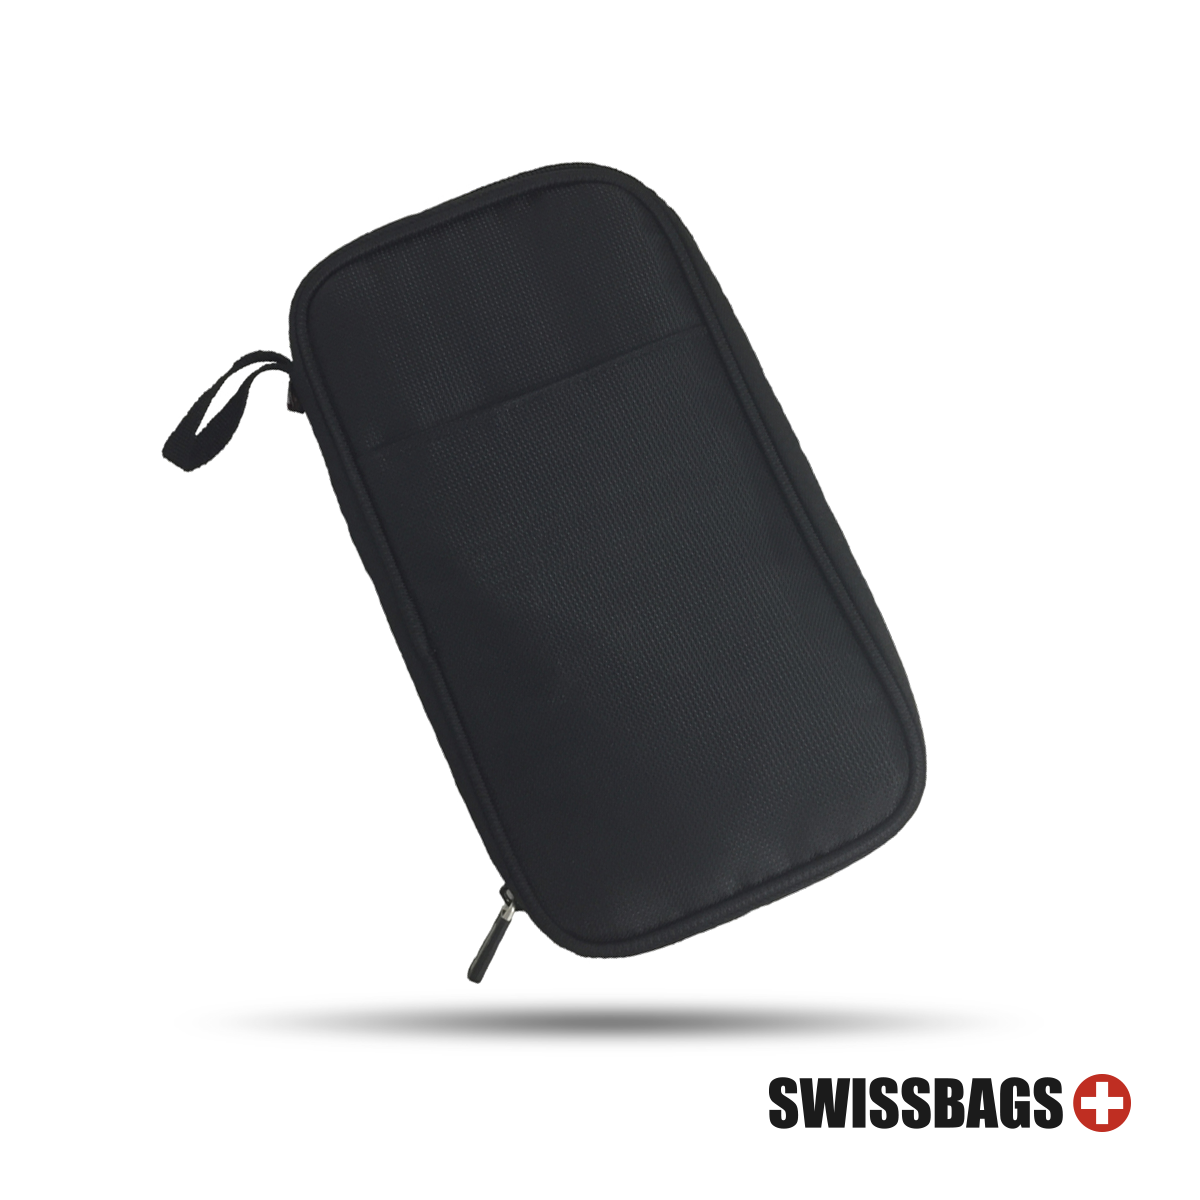 Passport Holder Swissbags